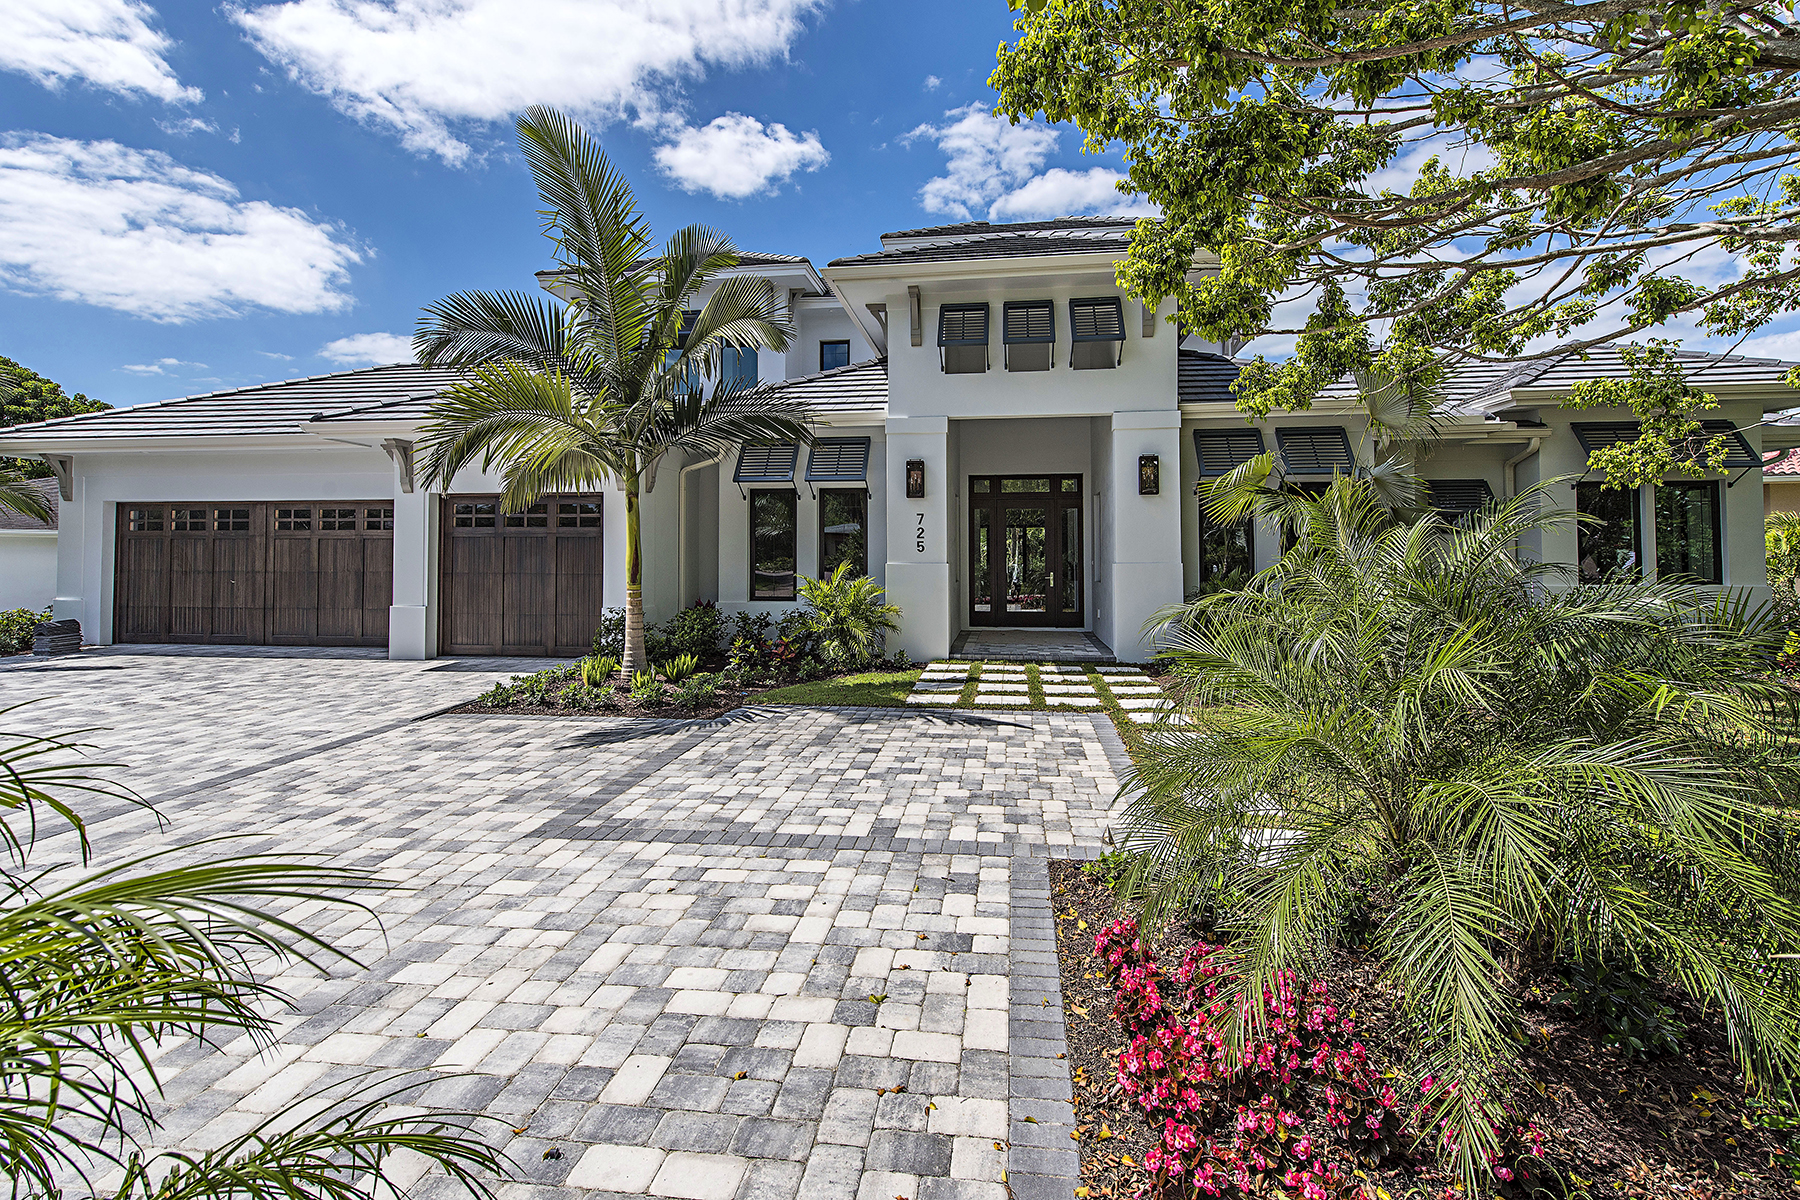 Single Family Home for Sale at MOORINGS 725 Regatta Rd Naples, Florida, 34103 United States